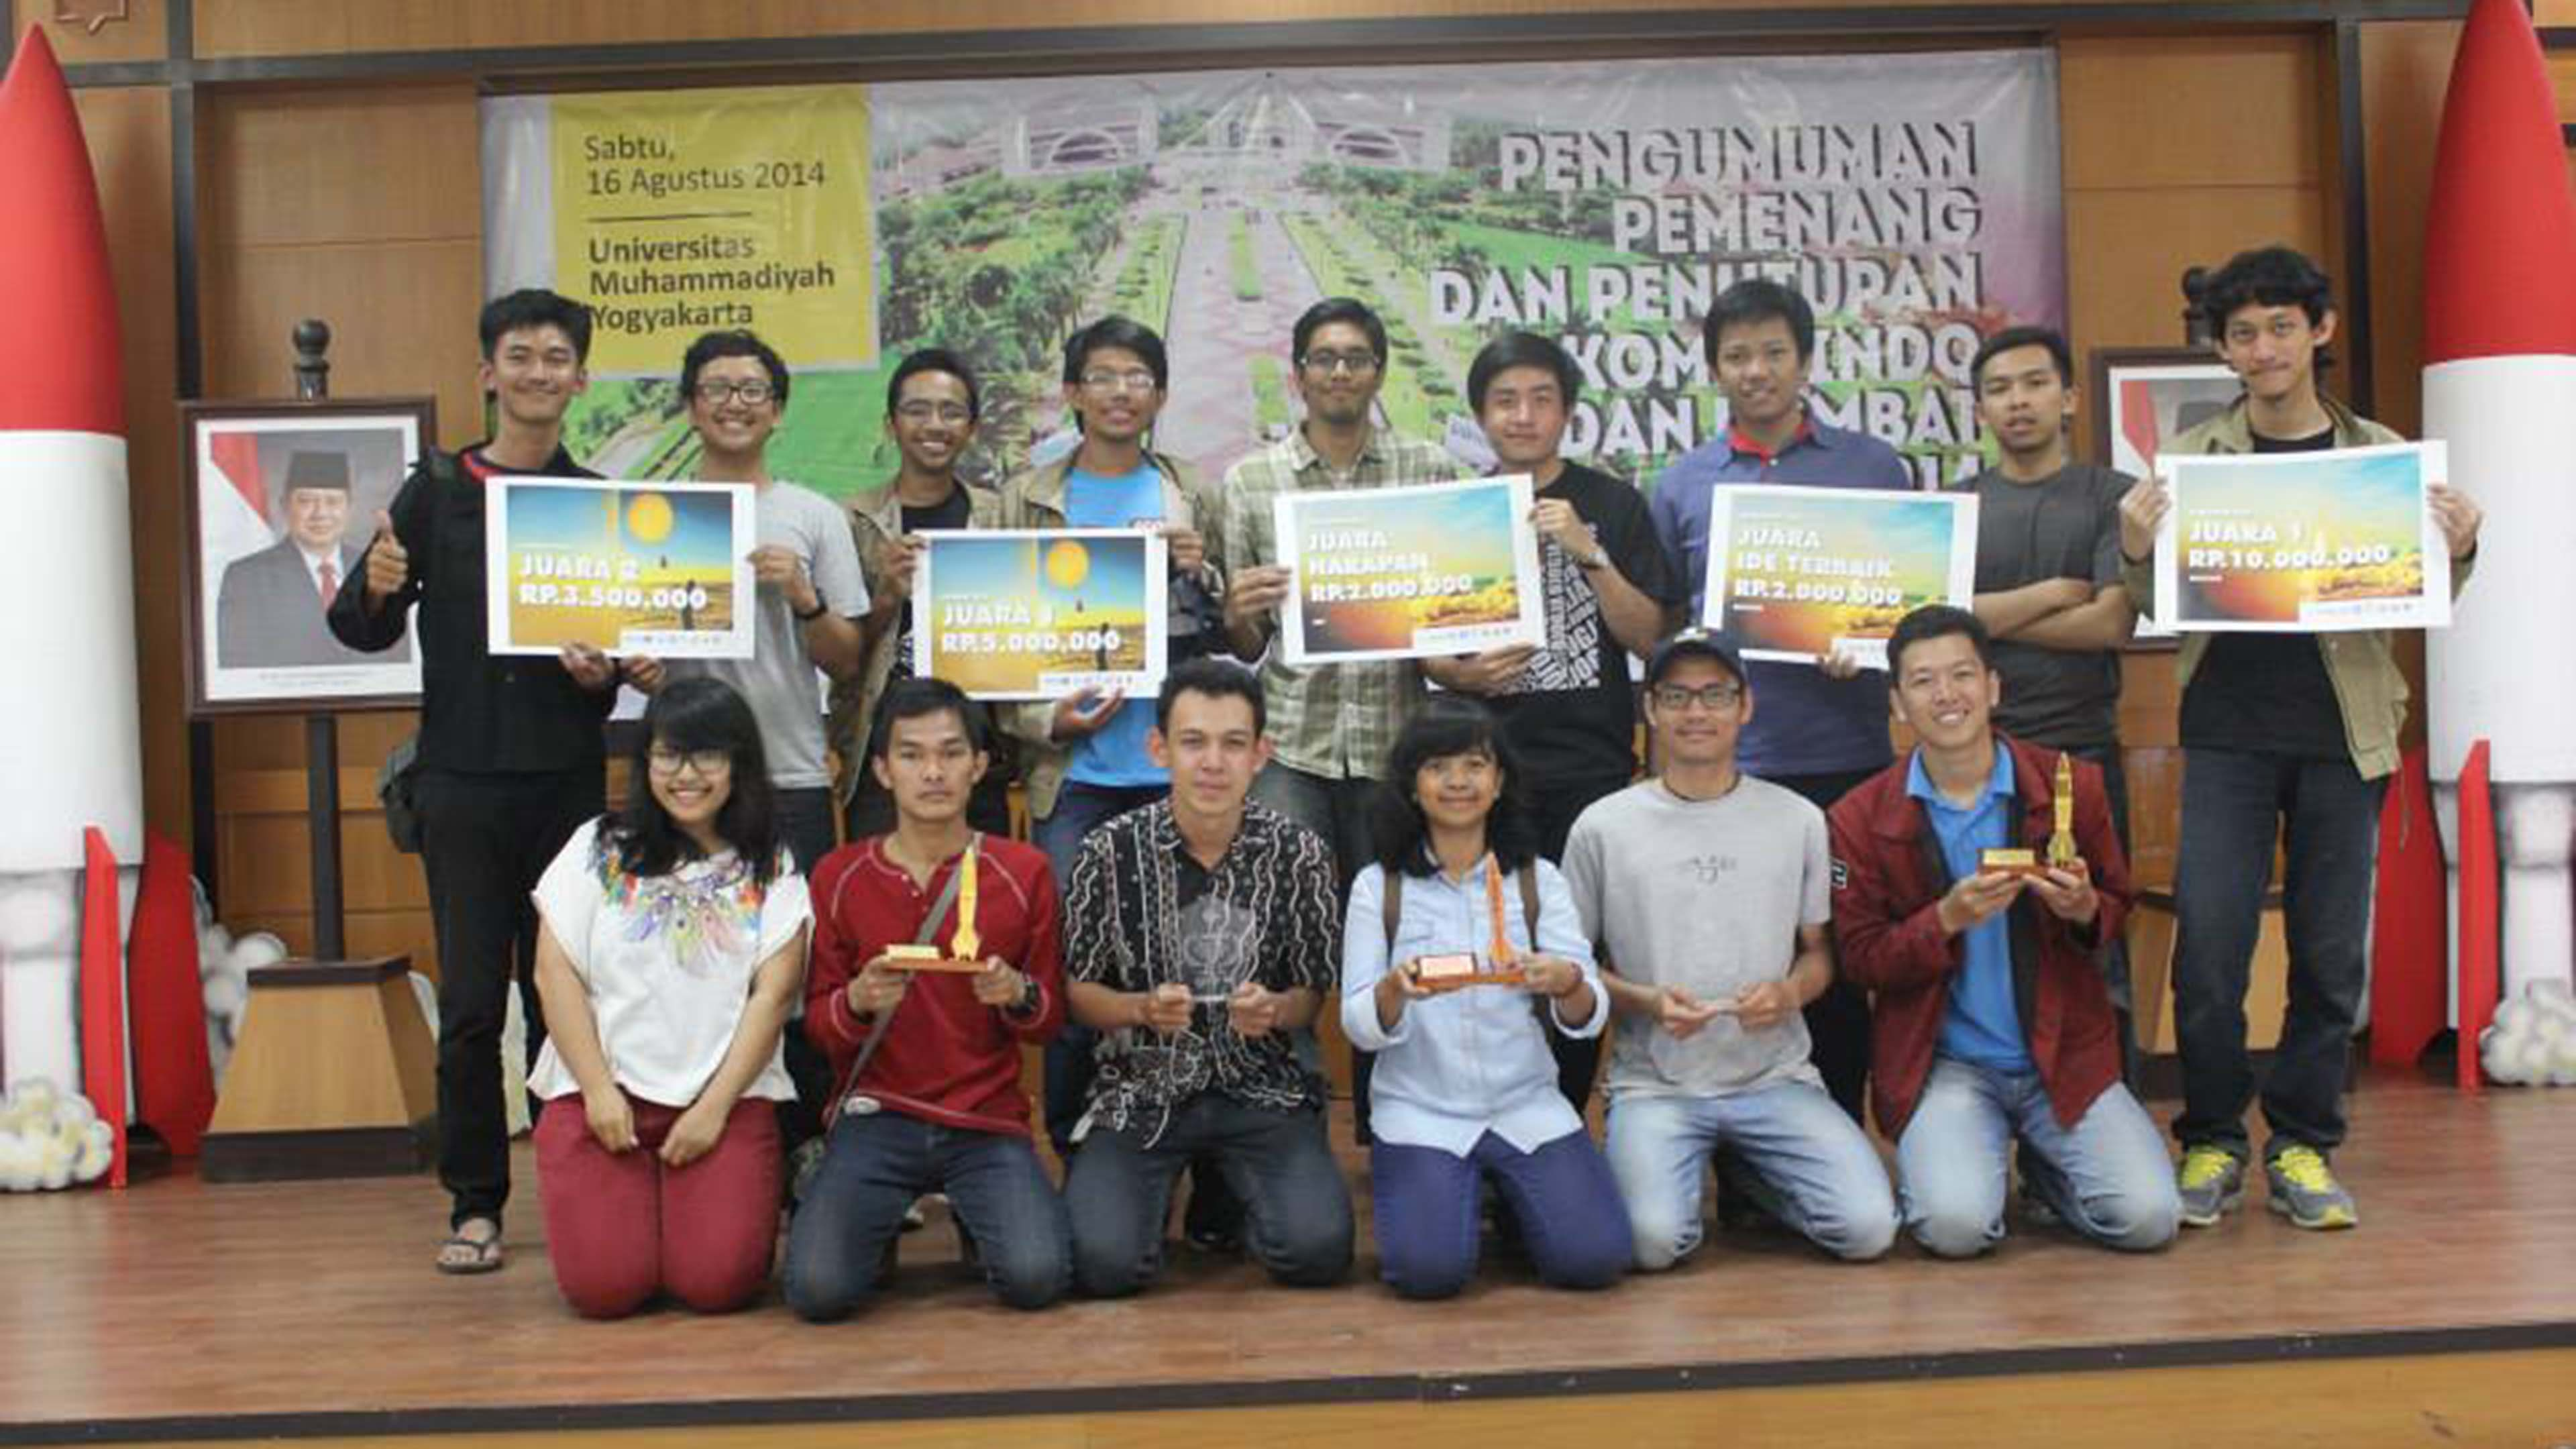 Institut Teknologi Bandung won most category in this competition